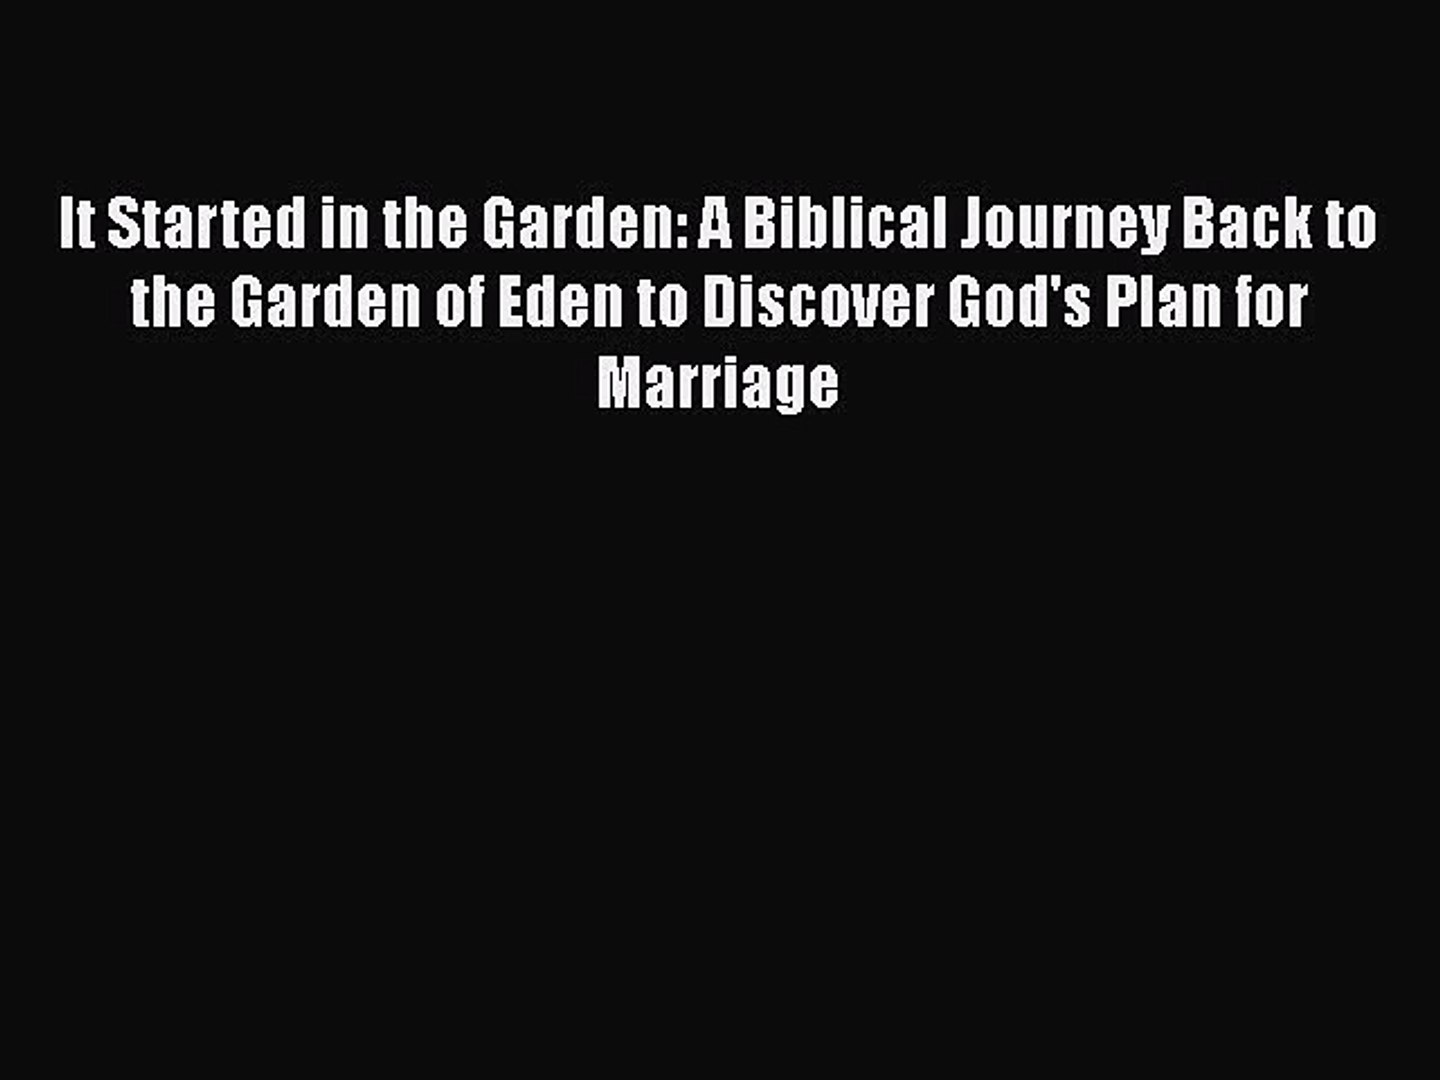 It Started in the Garden: A Biblical Journey Back to the Garden of Eden to Discover God's Plan